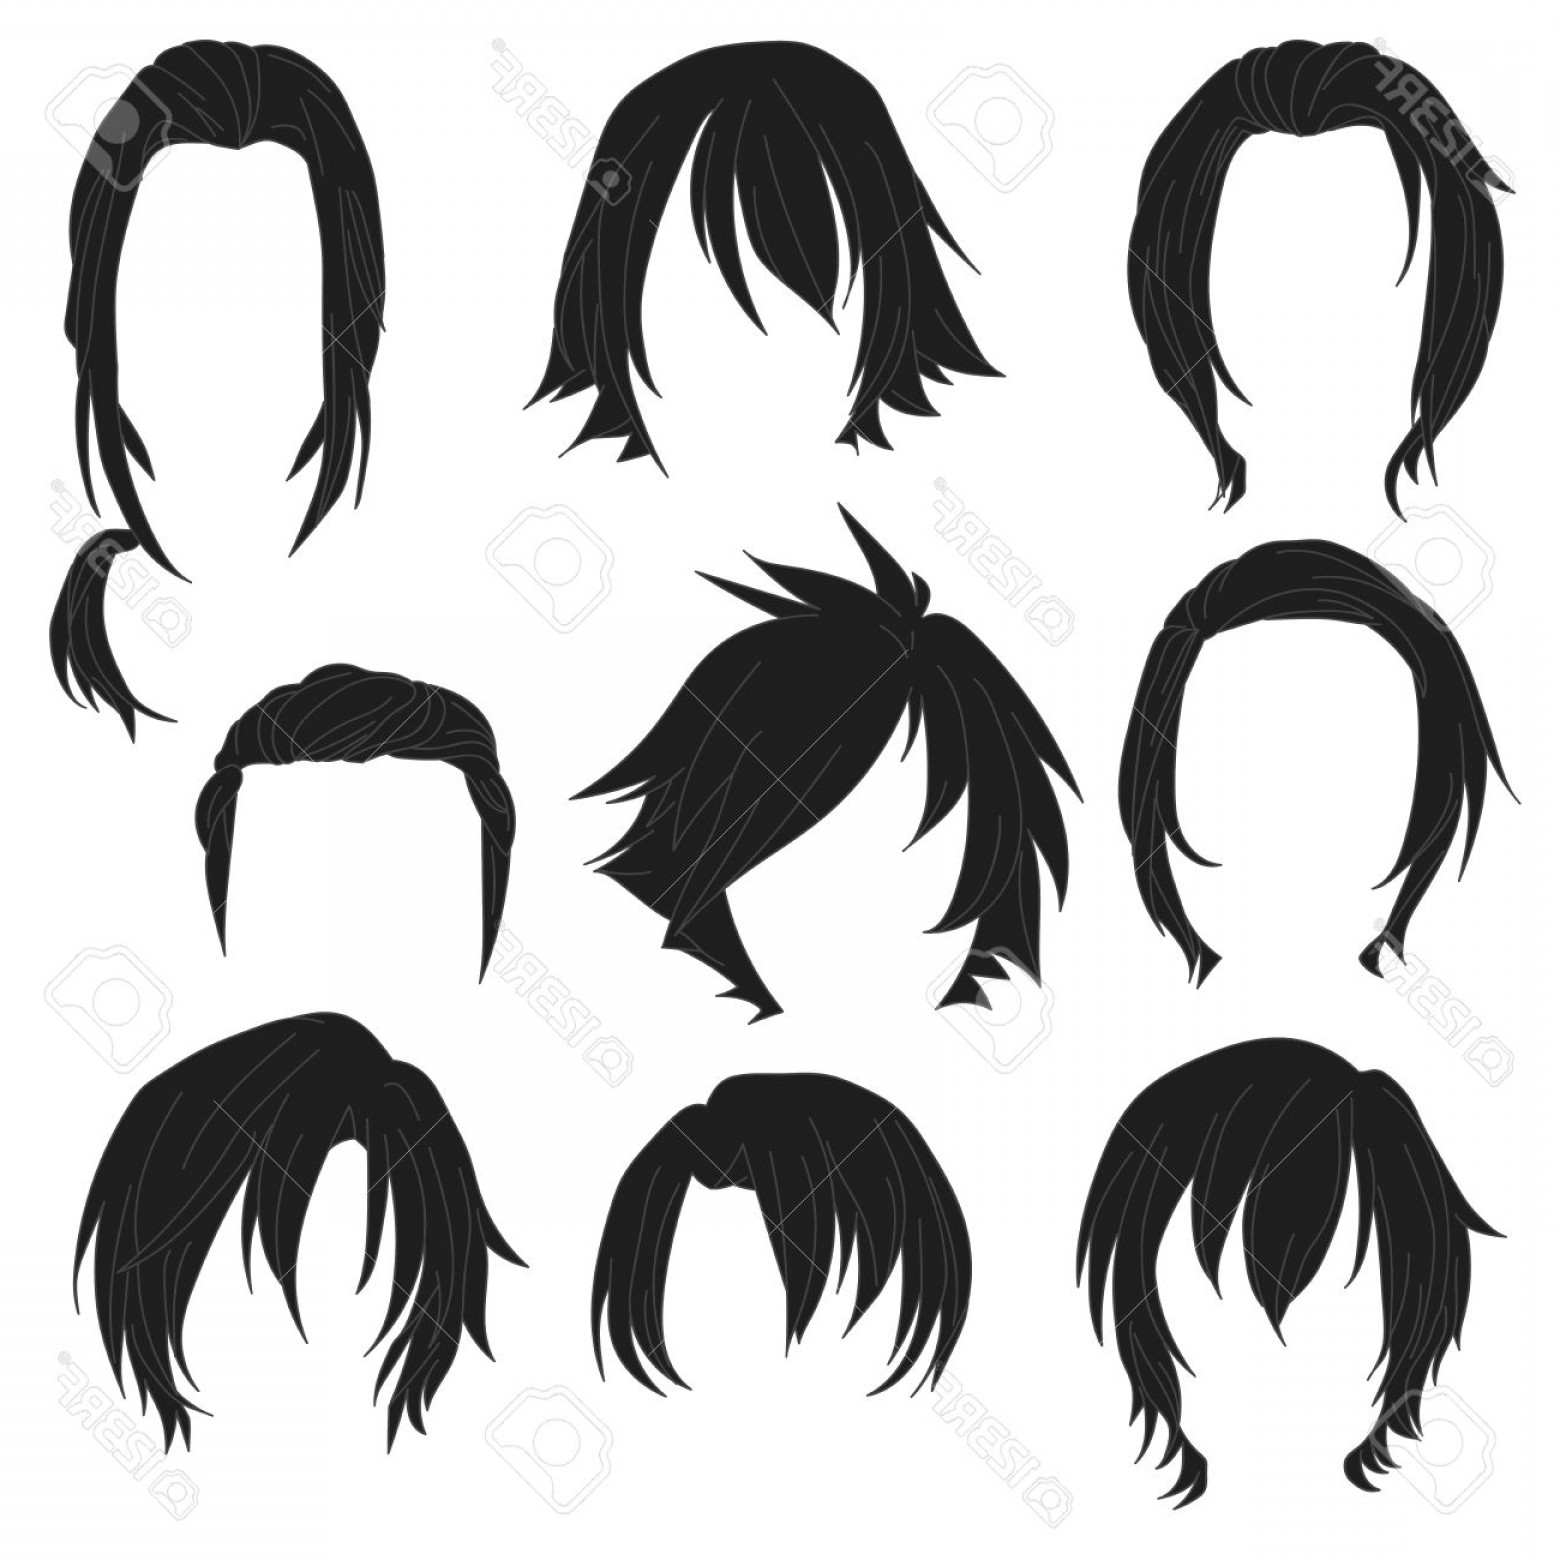 1560x1560 Photostock Vector Hair Styling For Woman Drawing Black Set